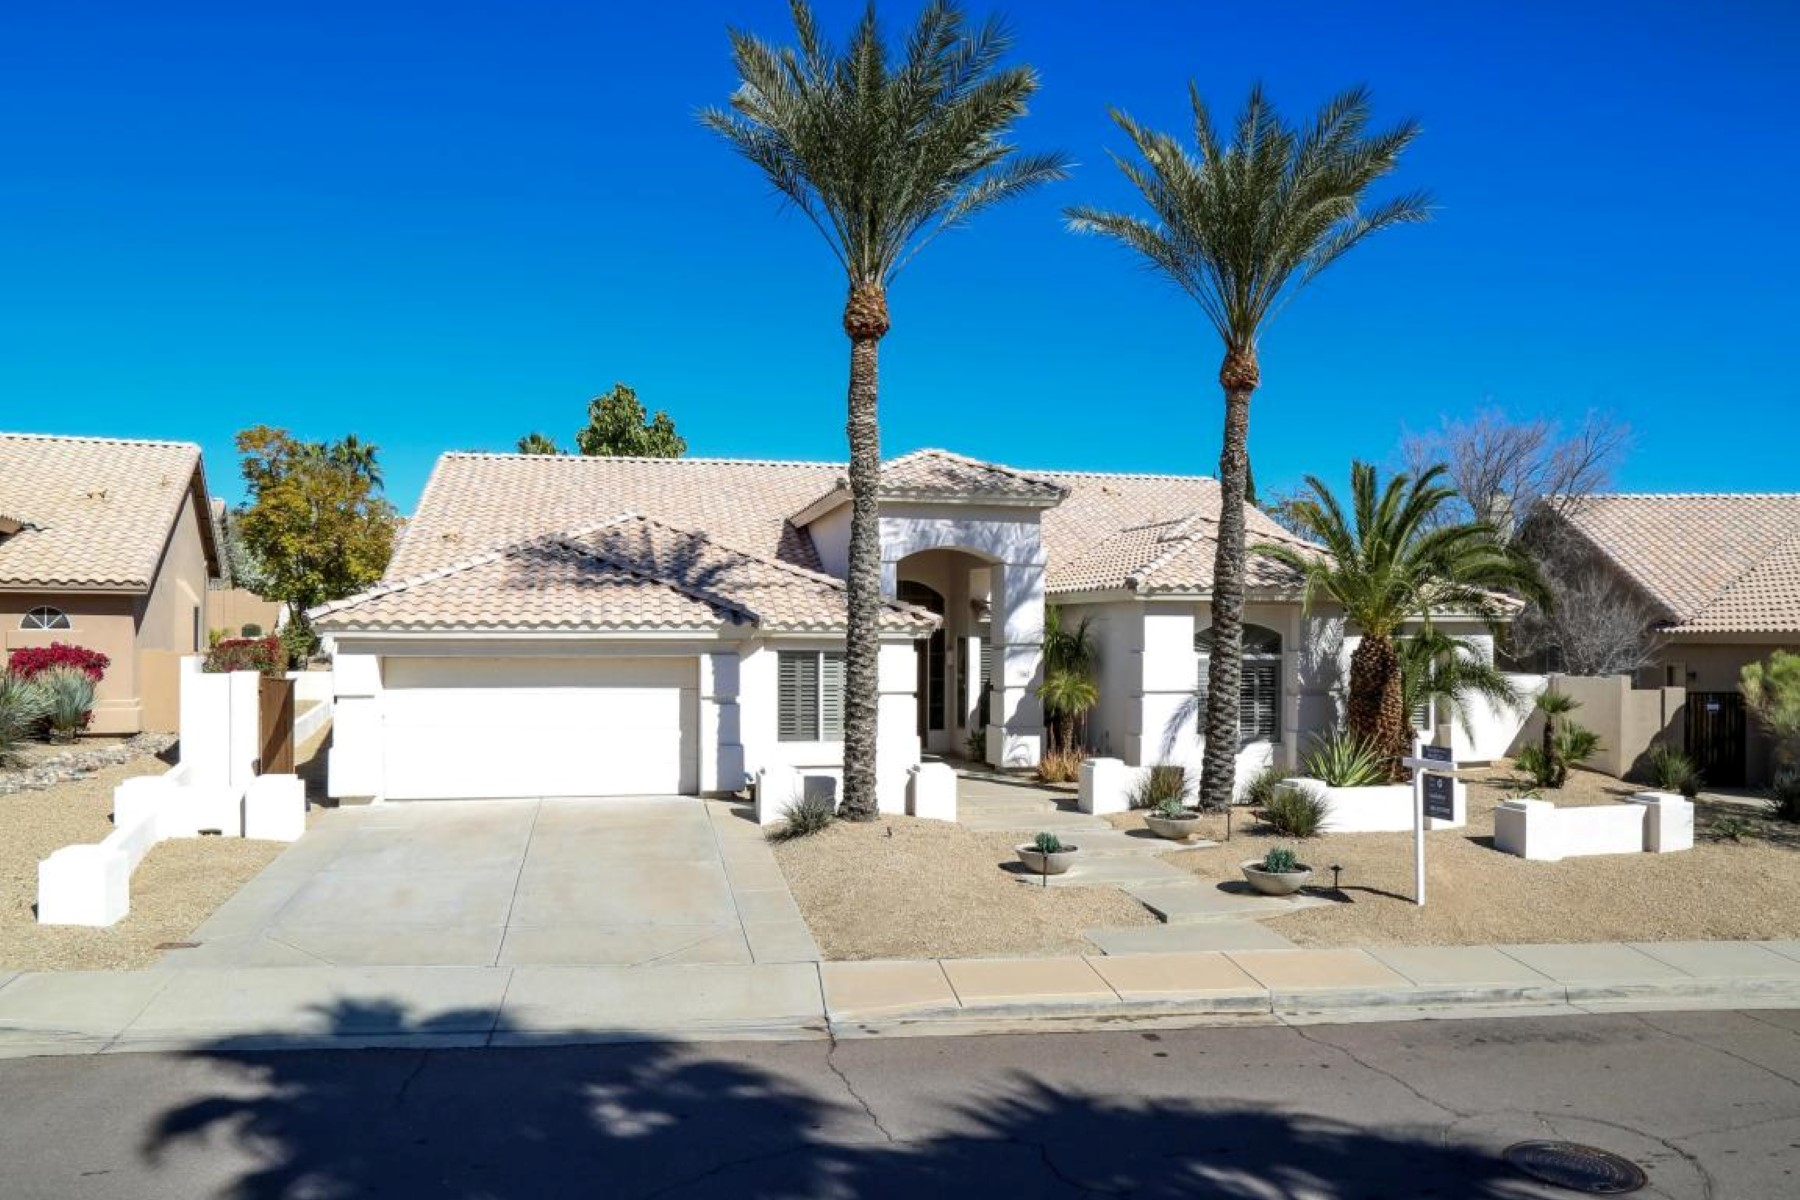 Vivienda unifamiliar por un Venta en Extremely Upgraded Remodel in Mountain Park Ranch 3162 E Desert Broom Way Phoenix, Arizona, 85048 Estados Unidos